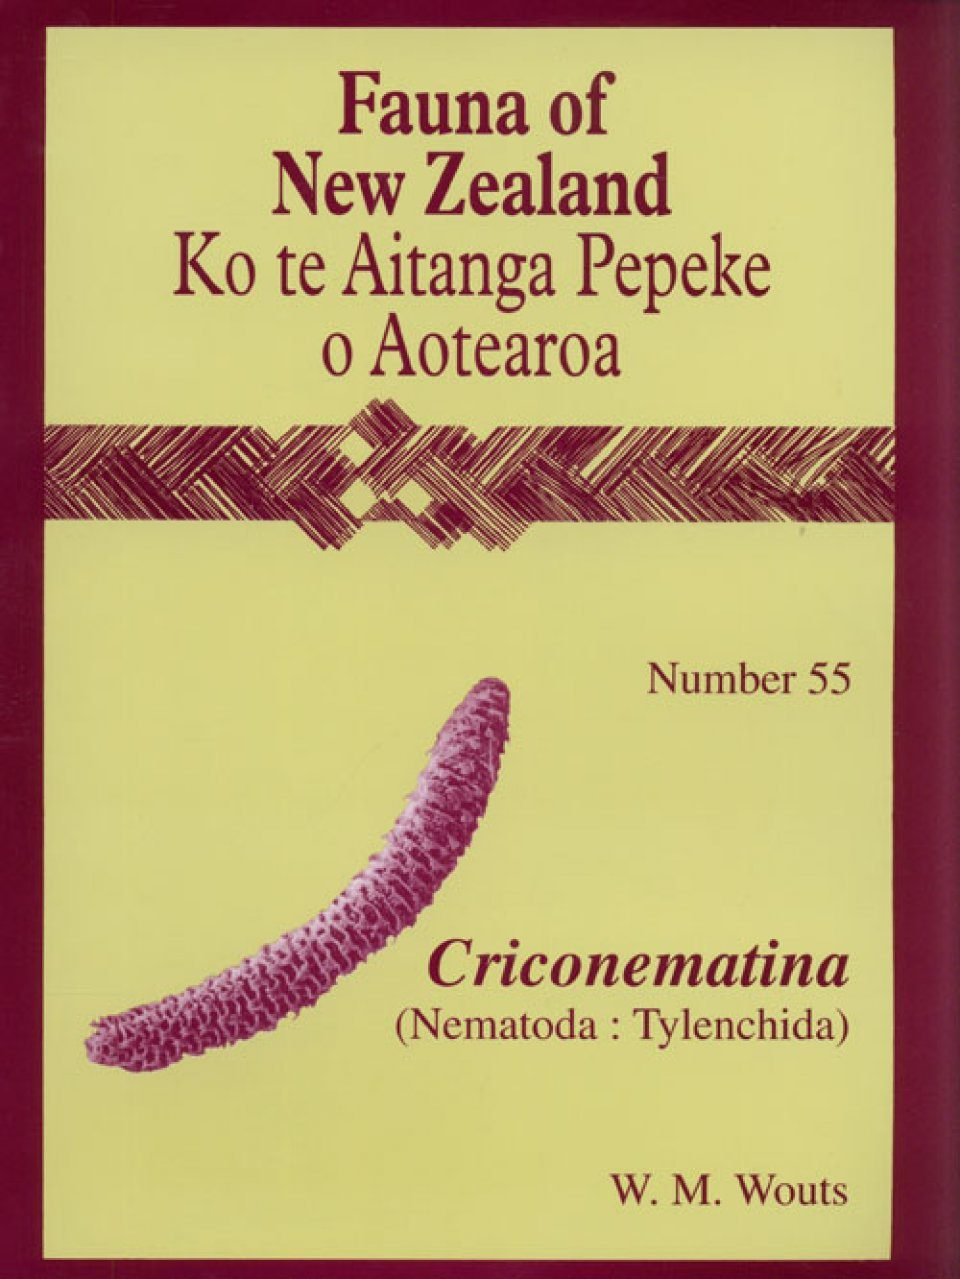 Fauna of New Zealand, No 55: Criconematina (Nematoda: Tylenchida)